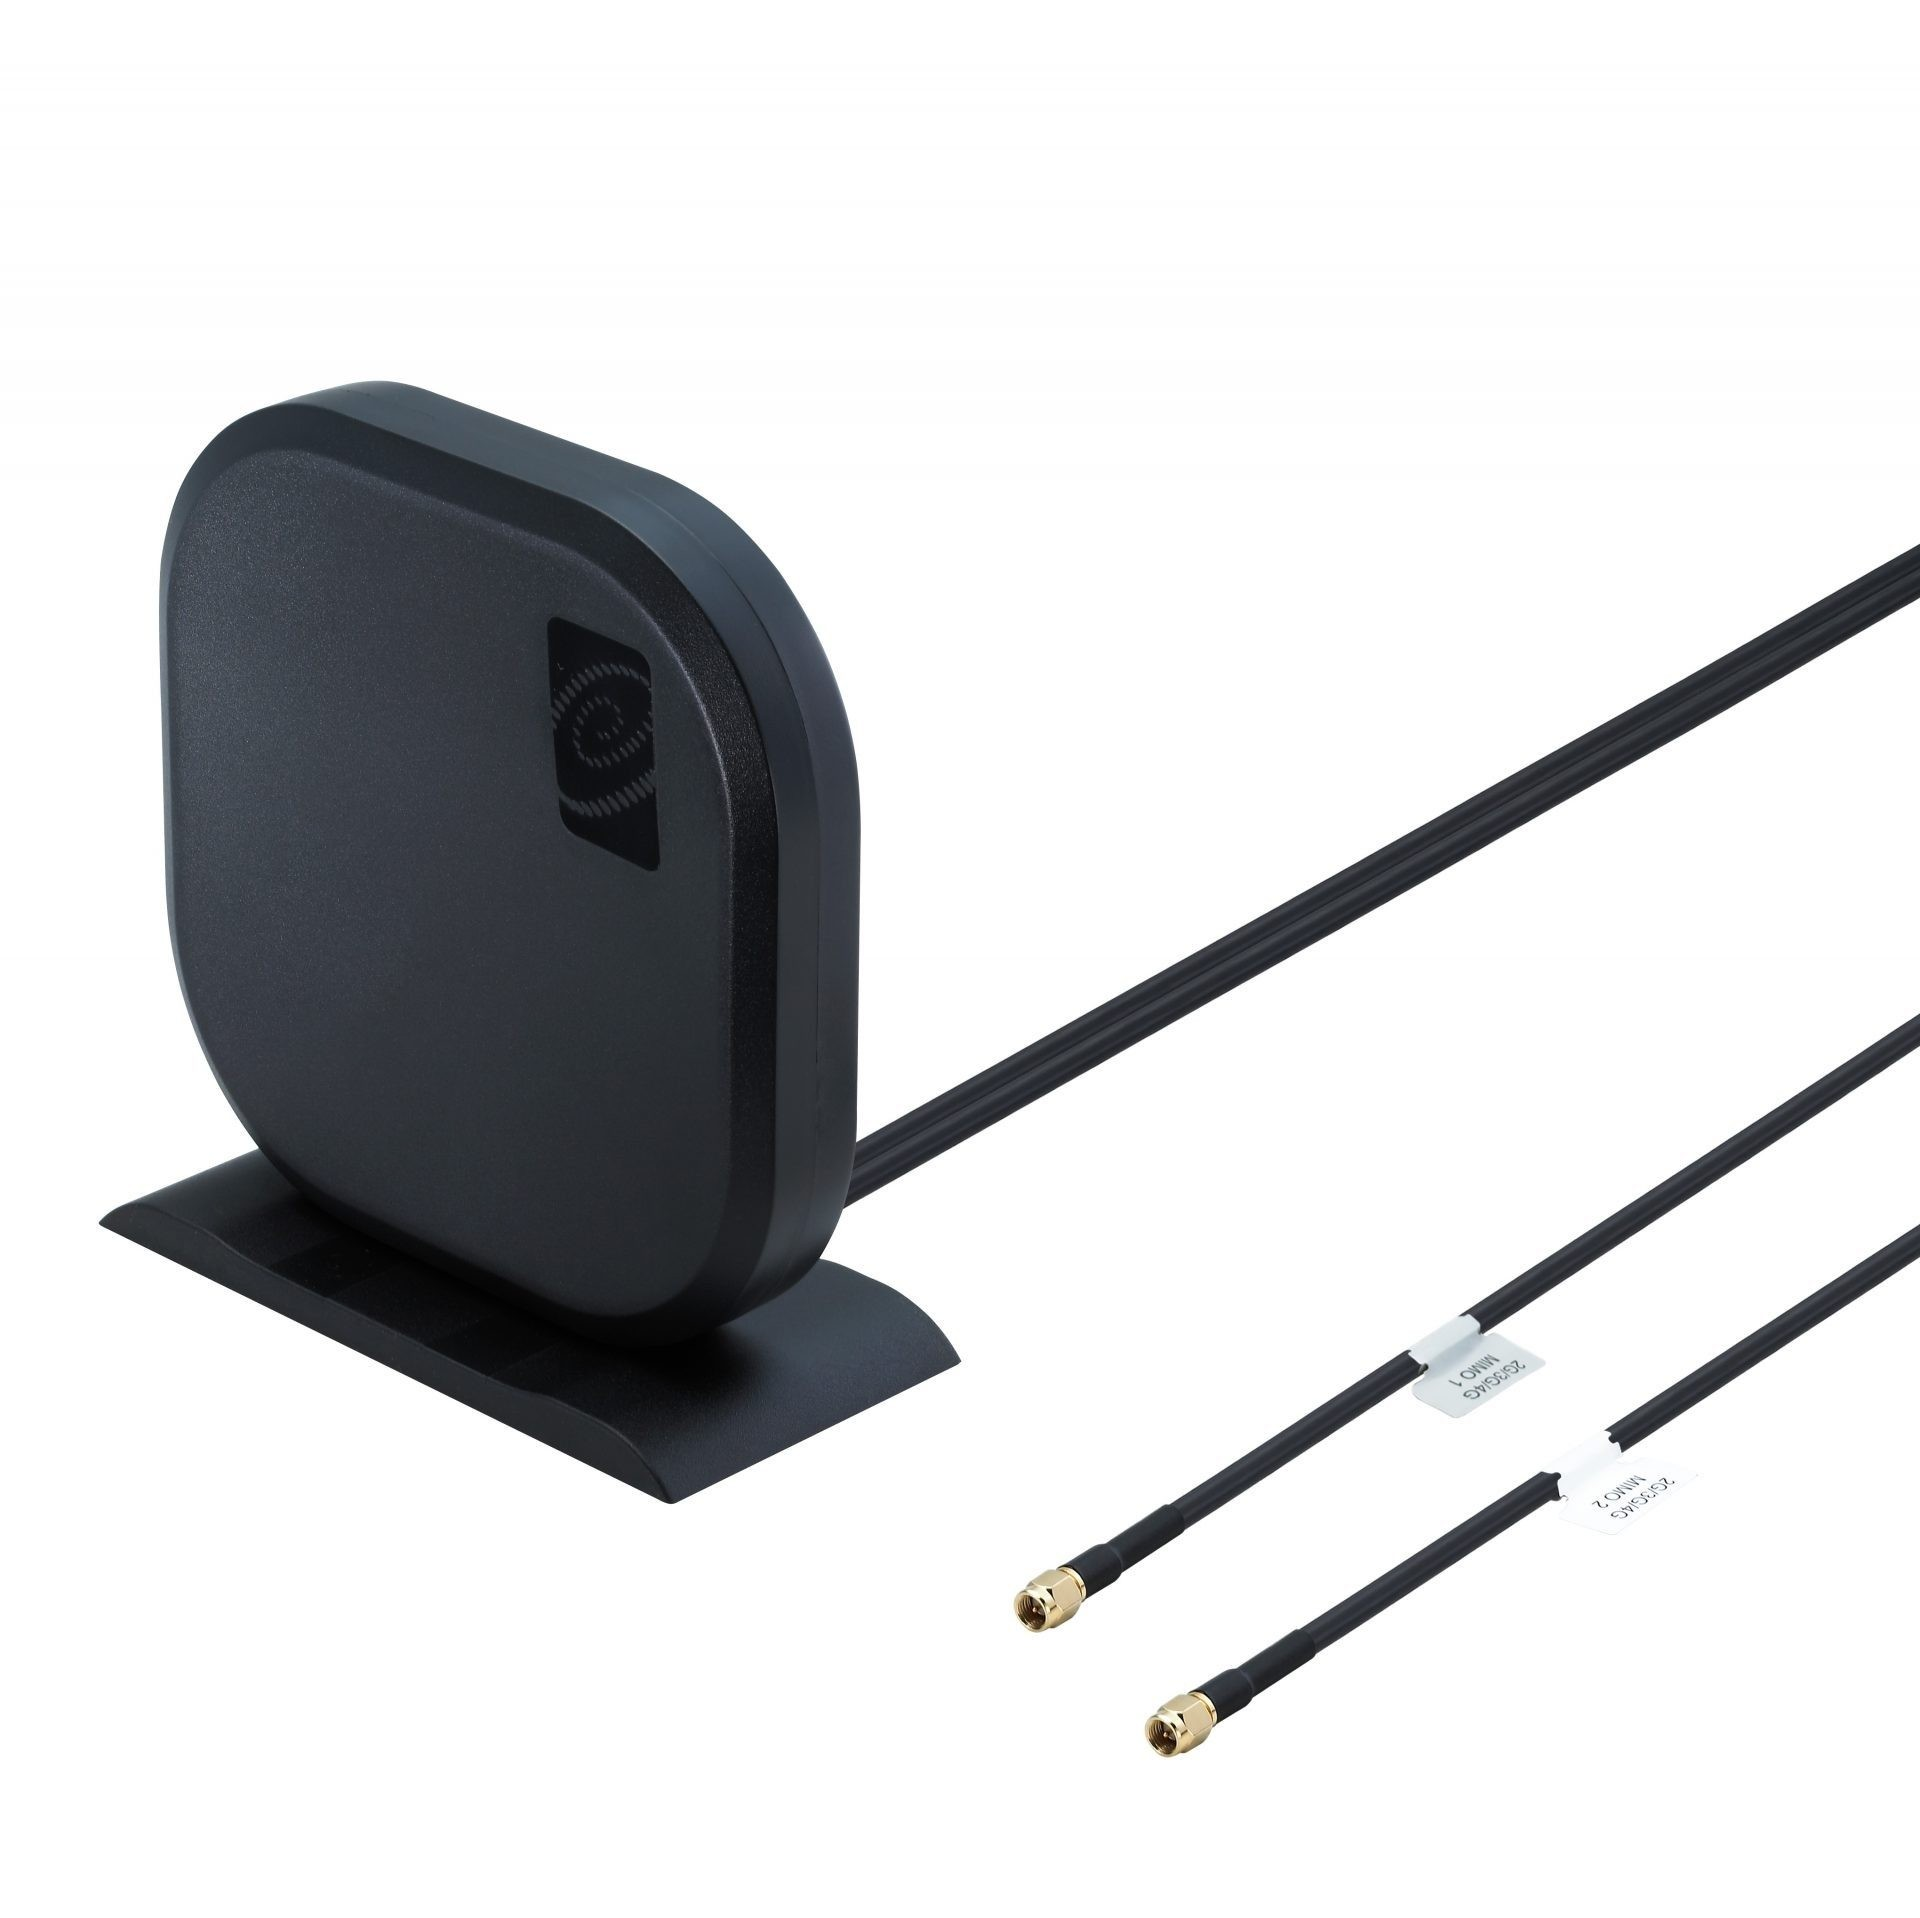 External 4G LTE Antennas - Surface Mounted Antenna Solutions